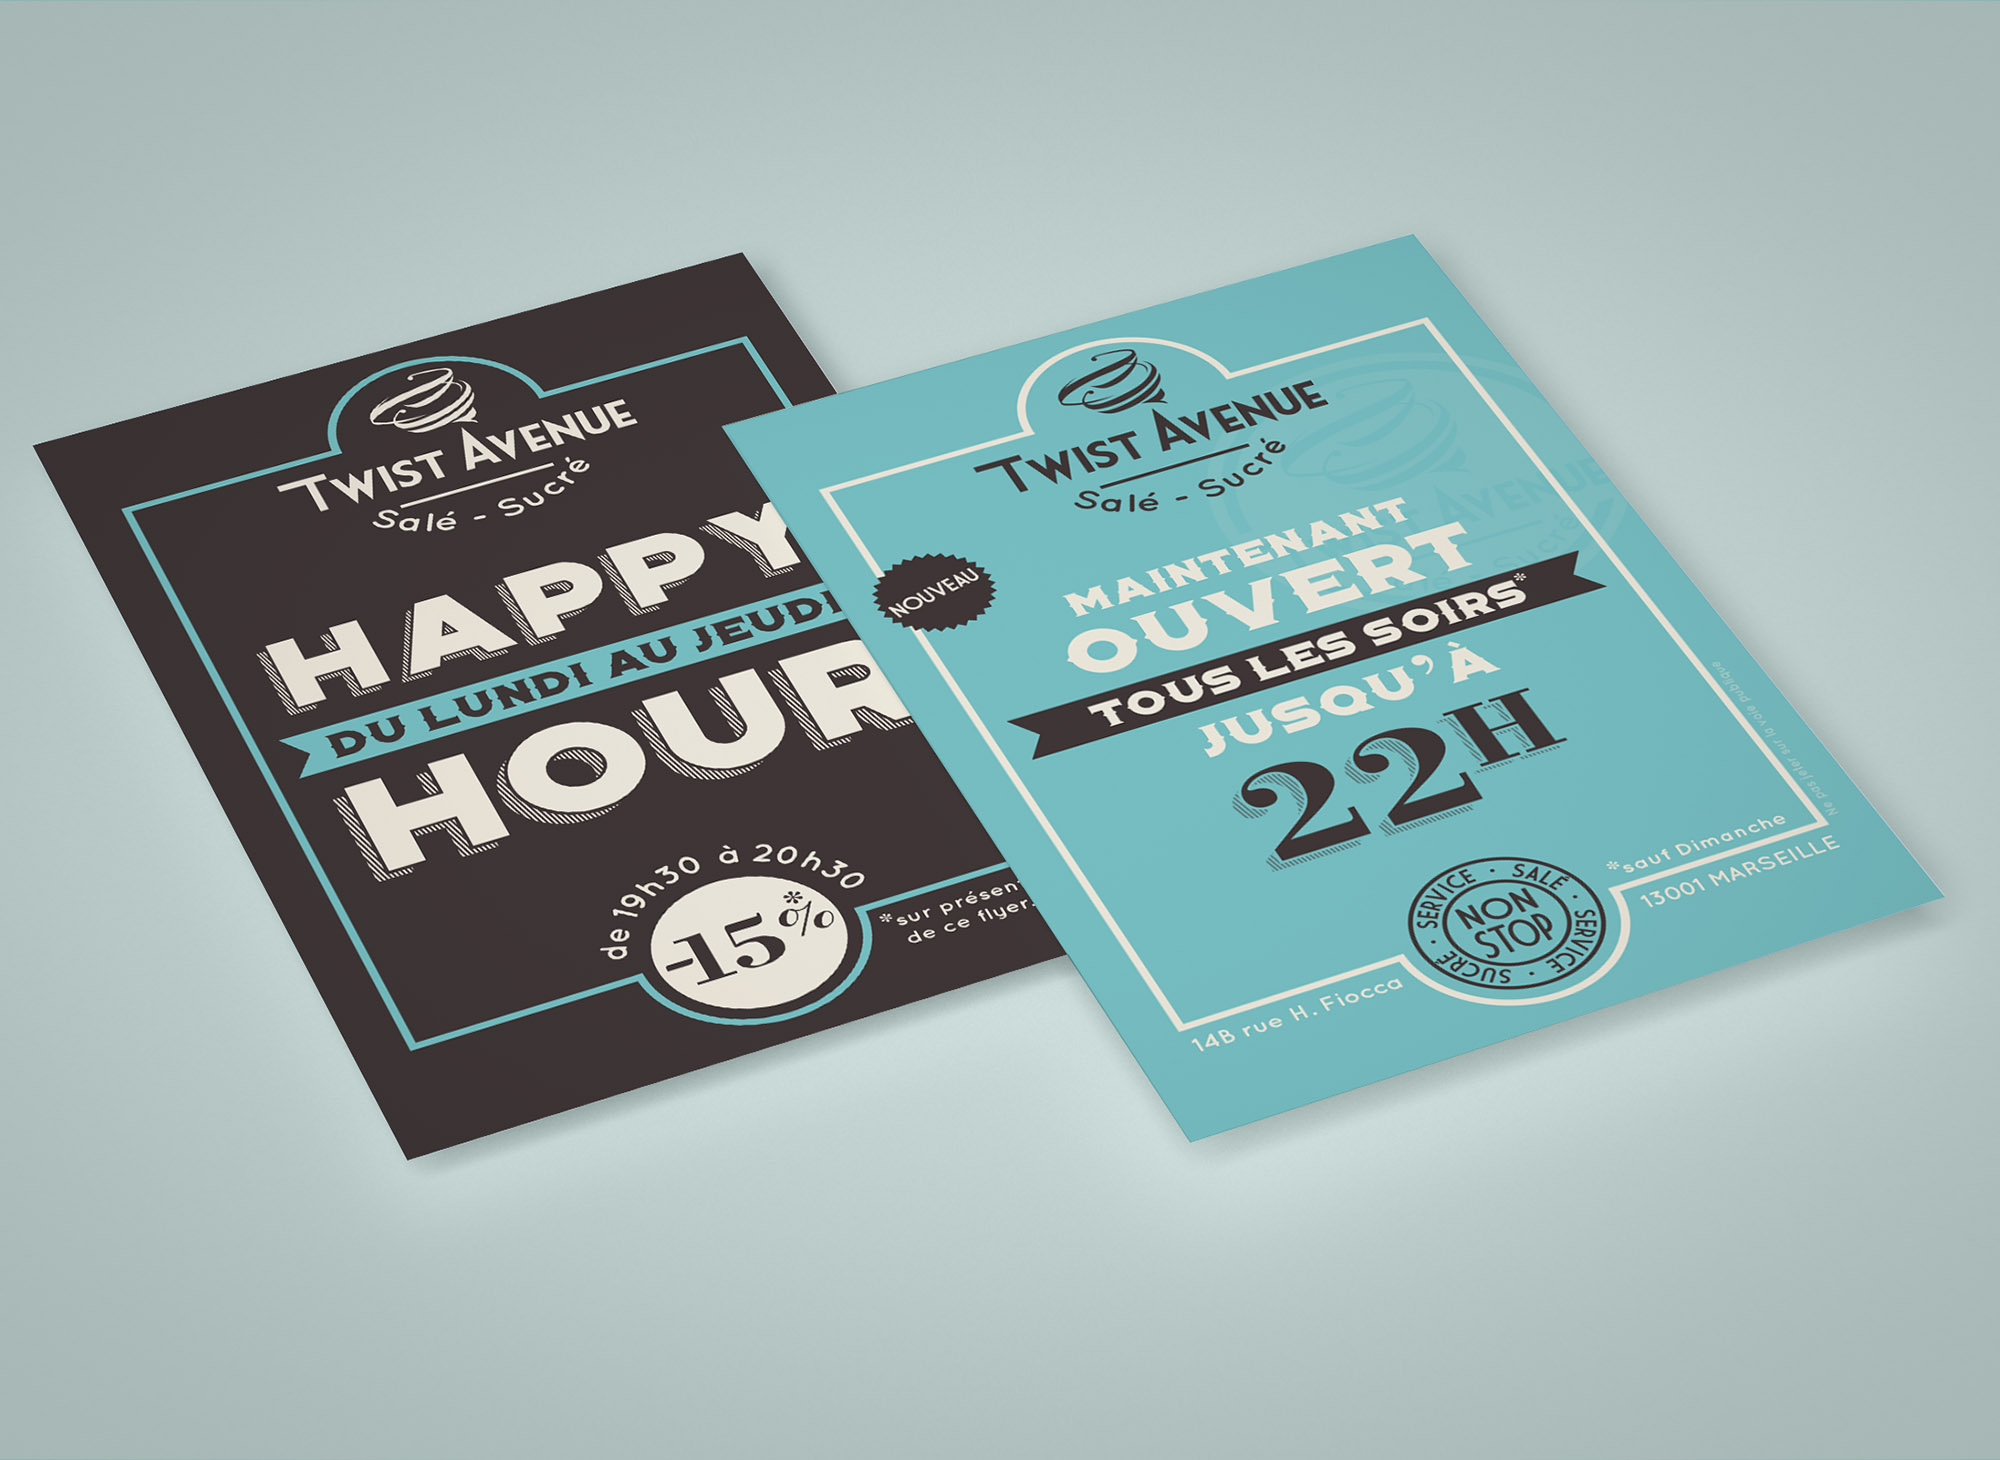 Flyer A5 pour Twist Avenue : Happy Hour